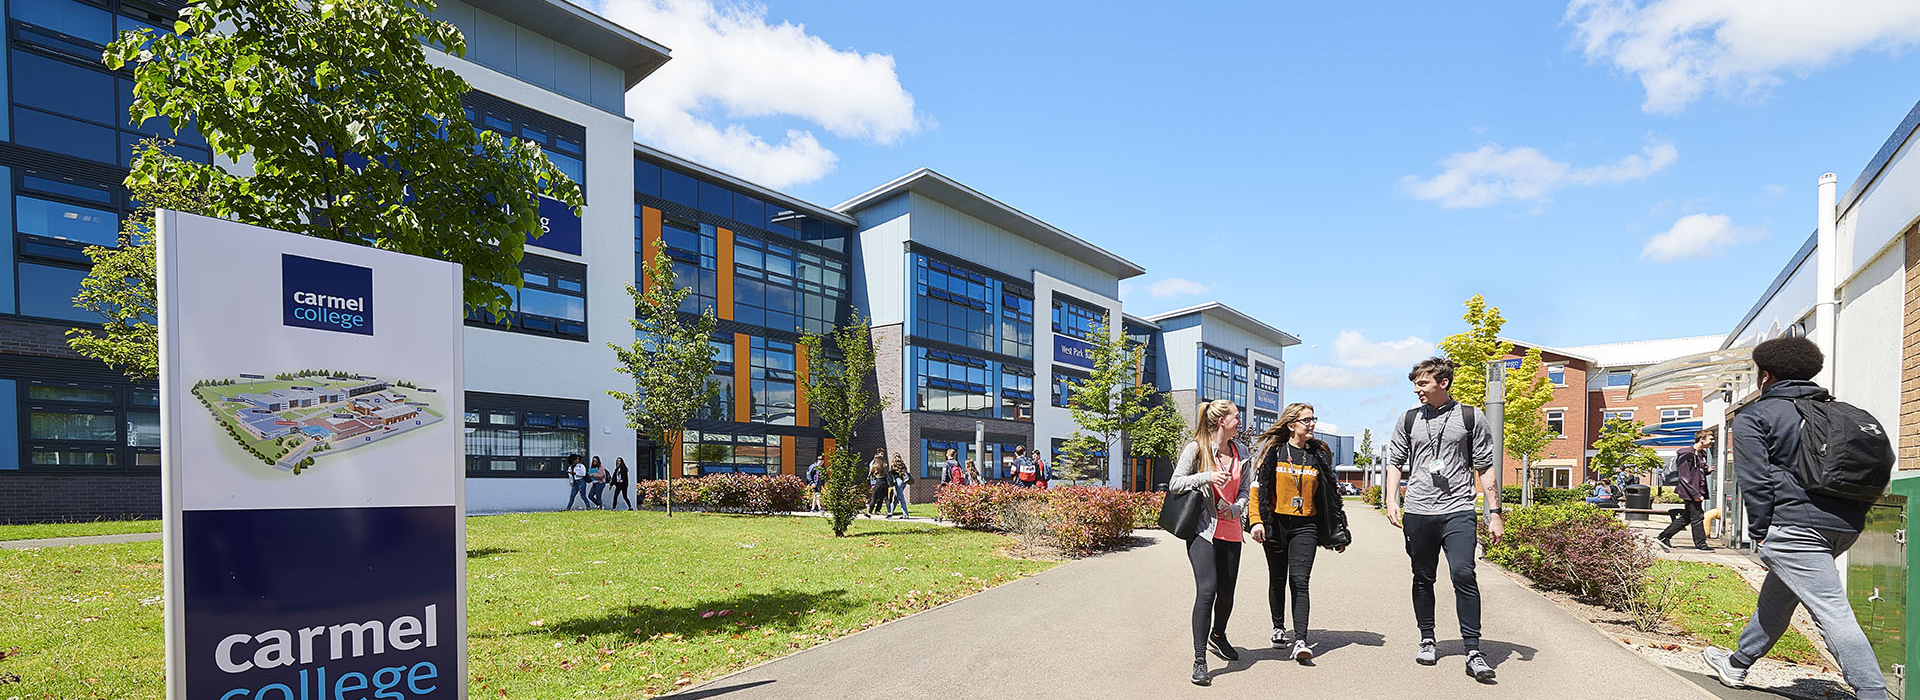 a photo of 3 students walking through Carmel College Campus on a sunny day.